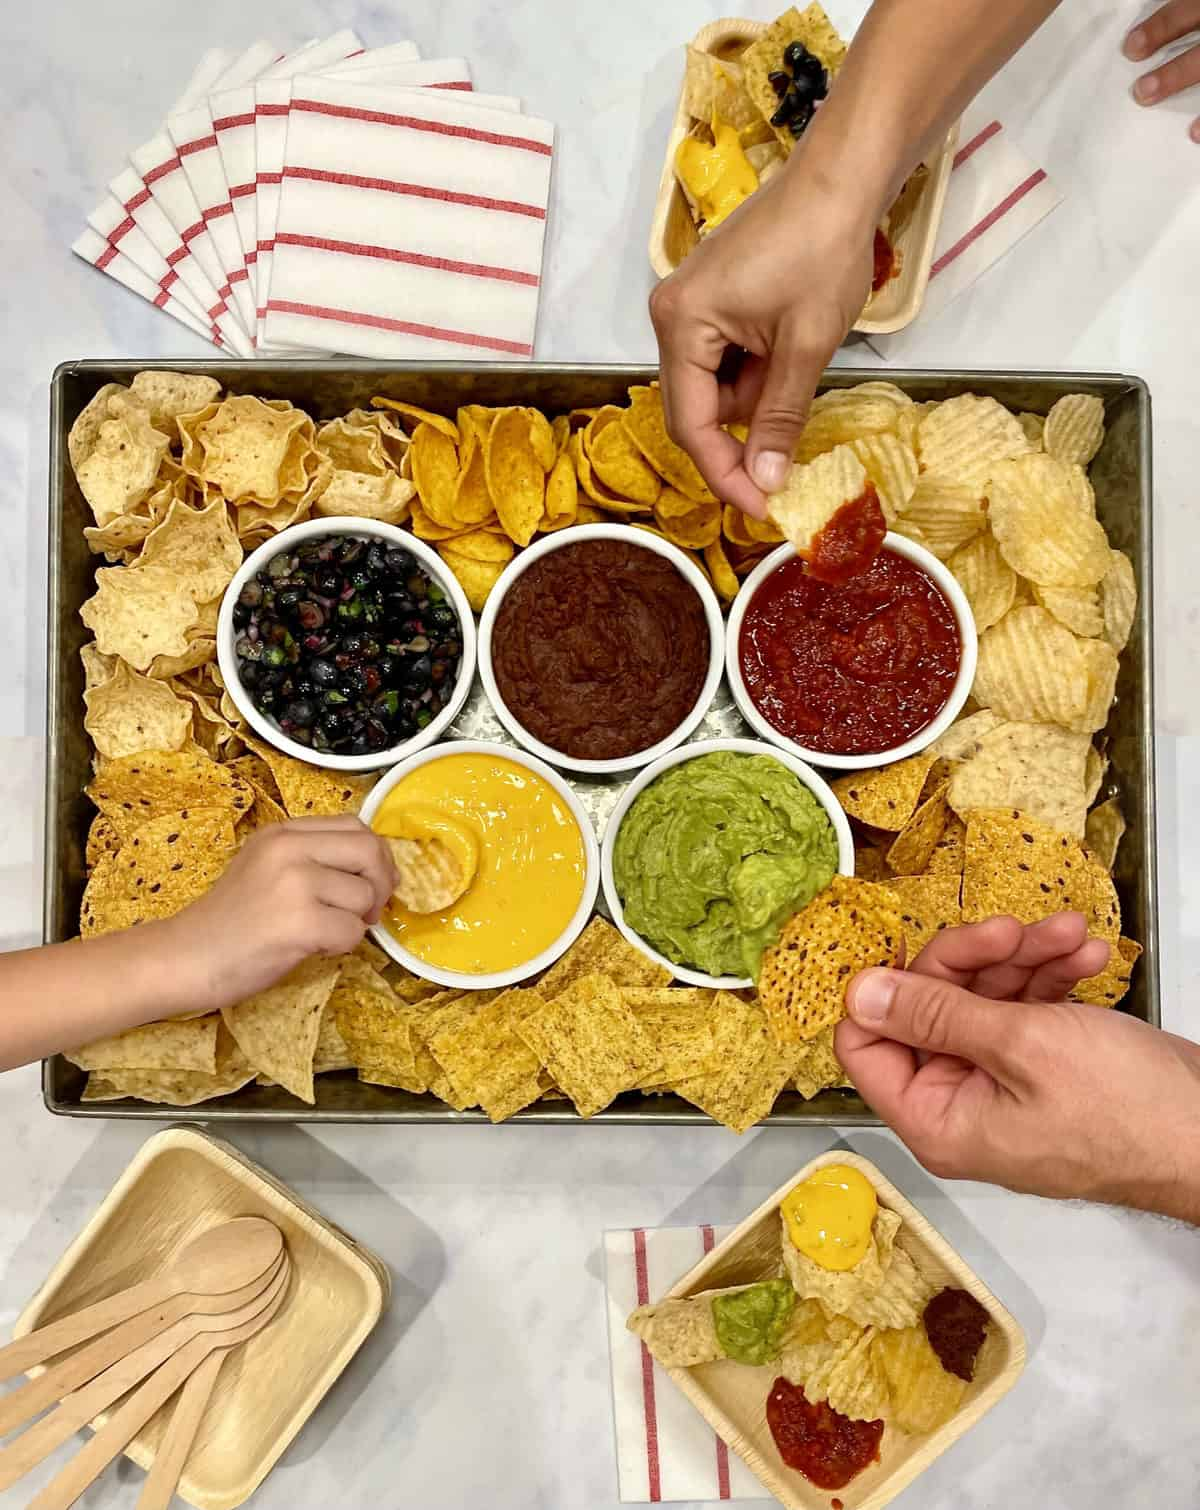 Olympics Chips and Dips Tray by The BakerMama